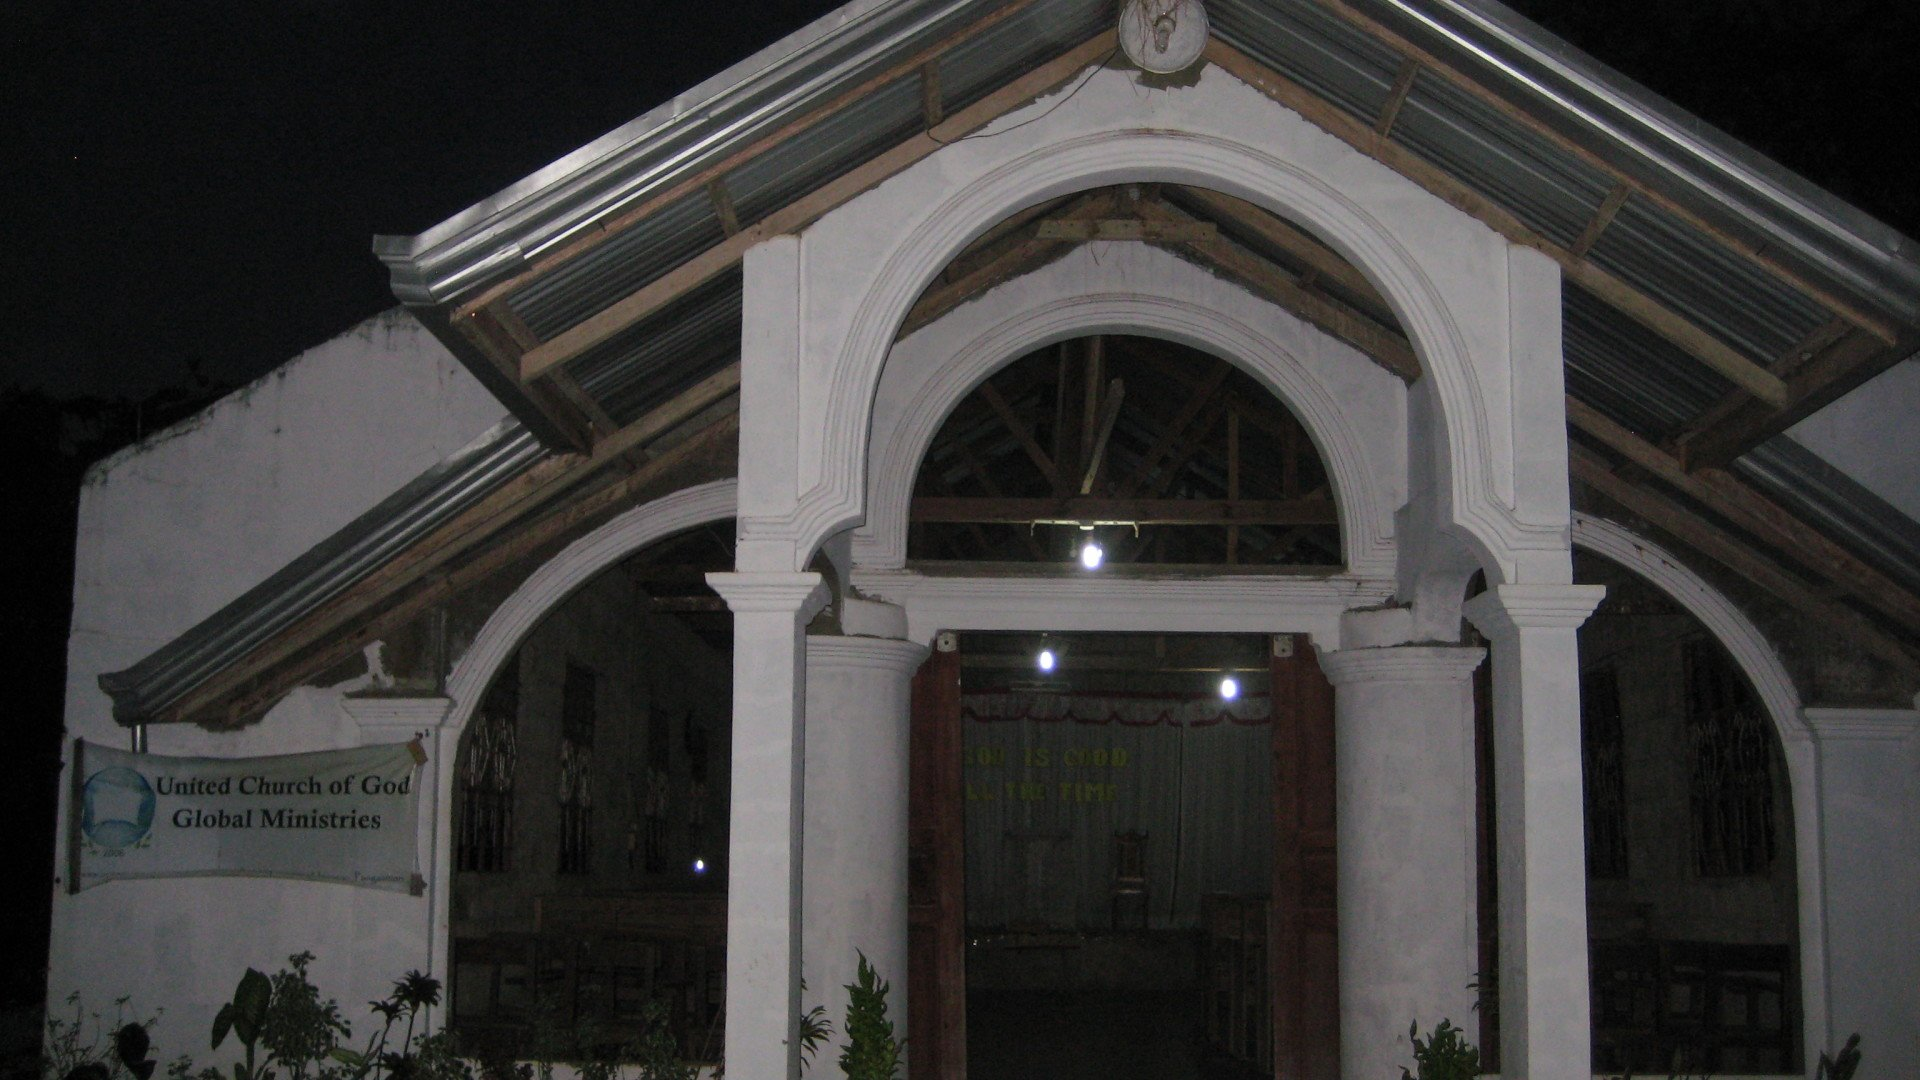 United Church of God - Unimgan, Philippines